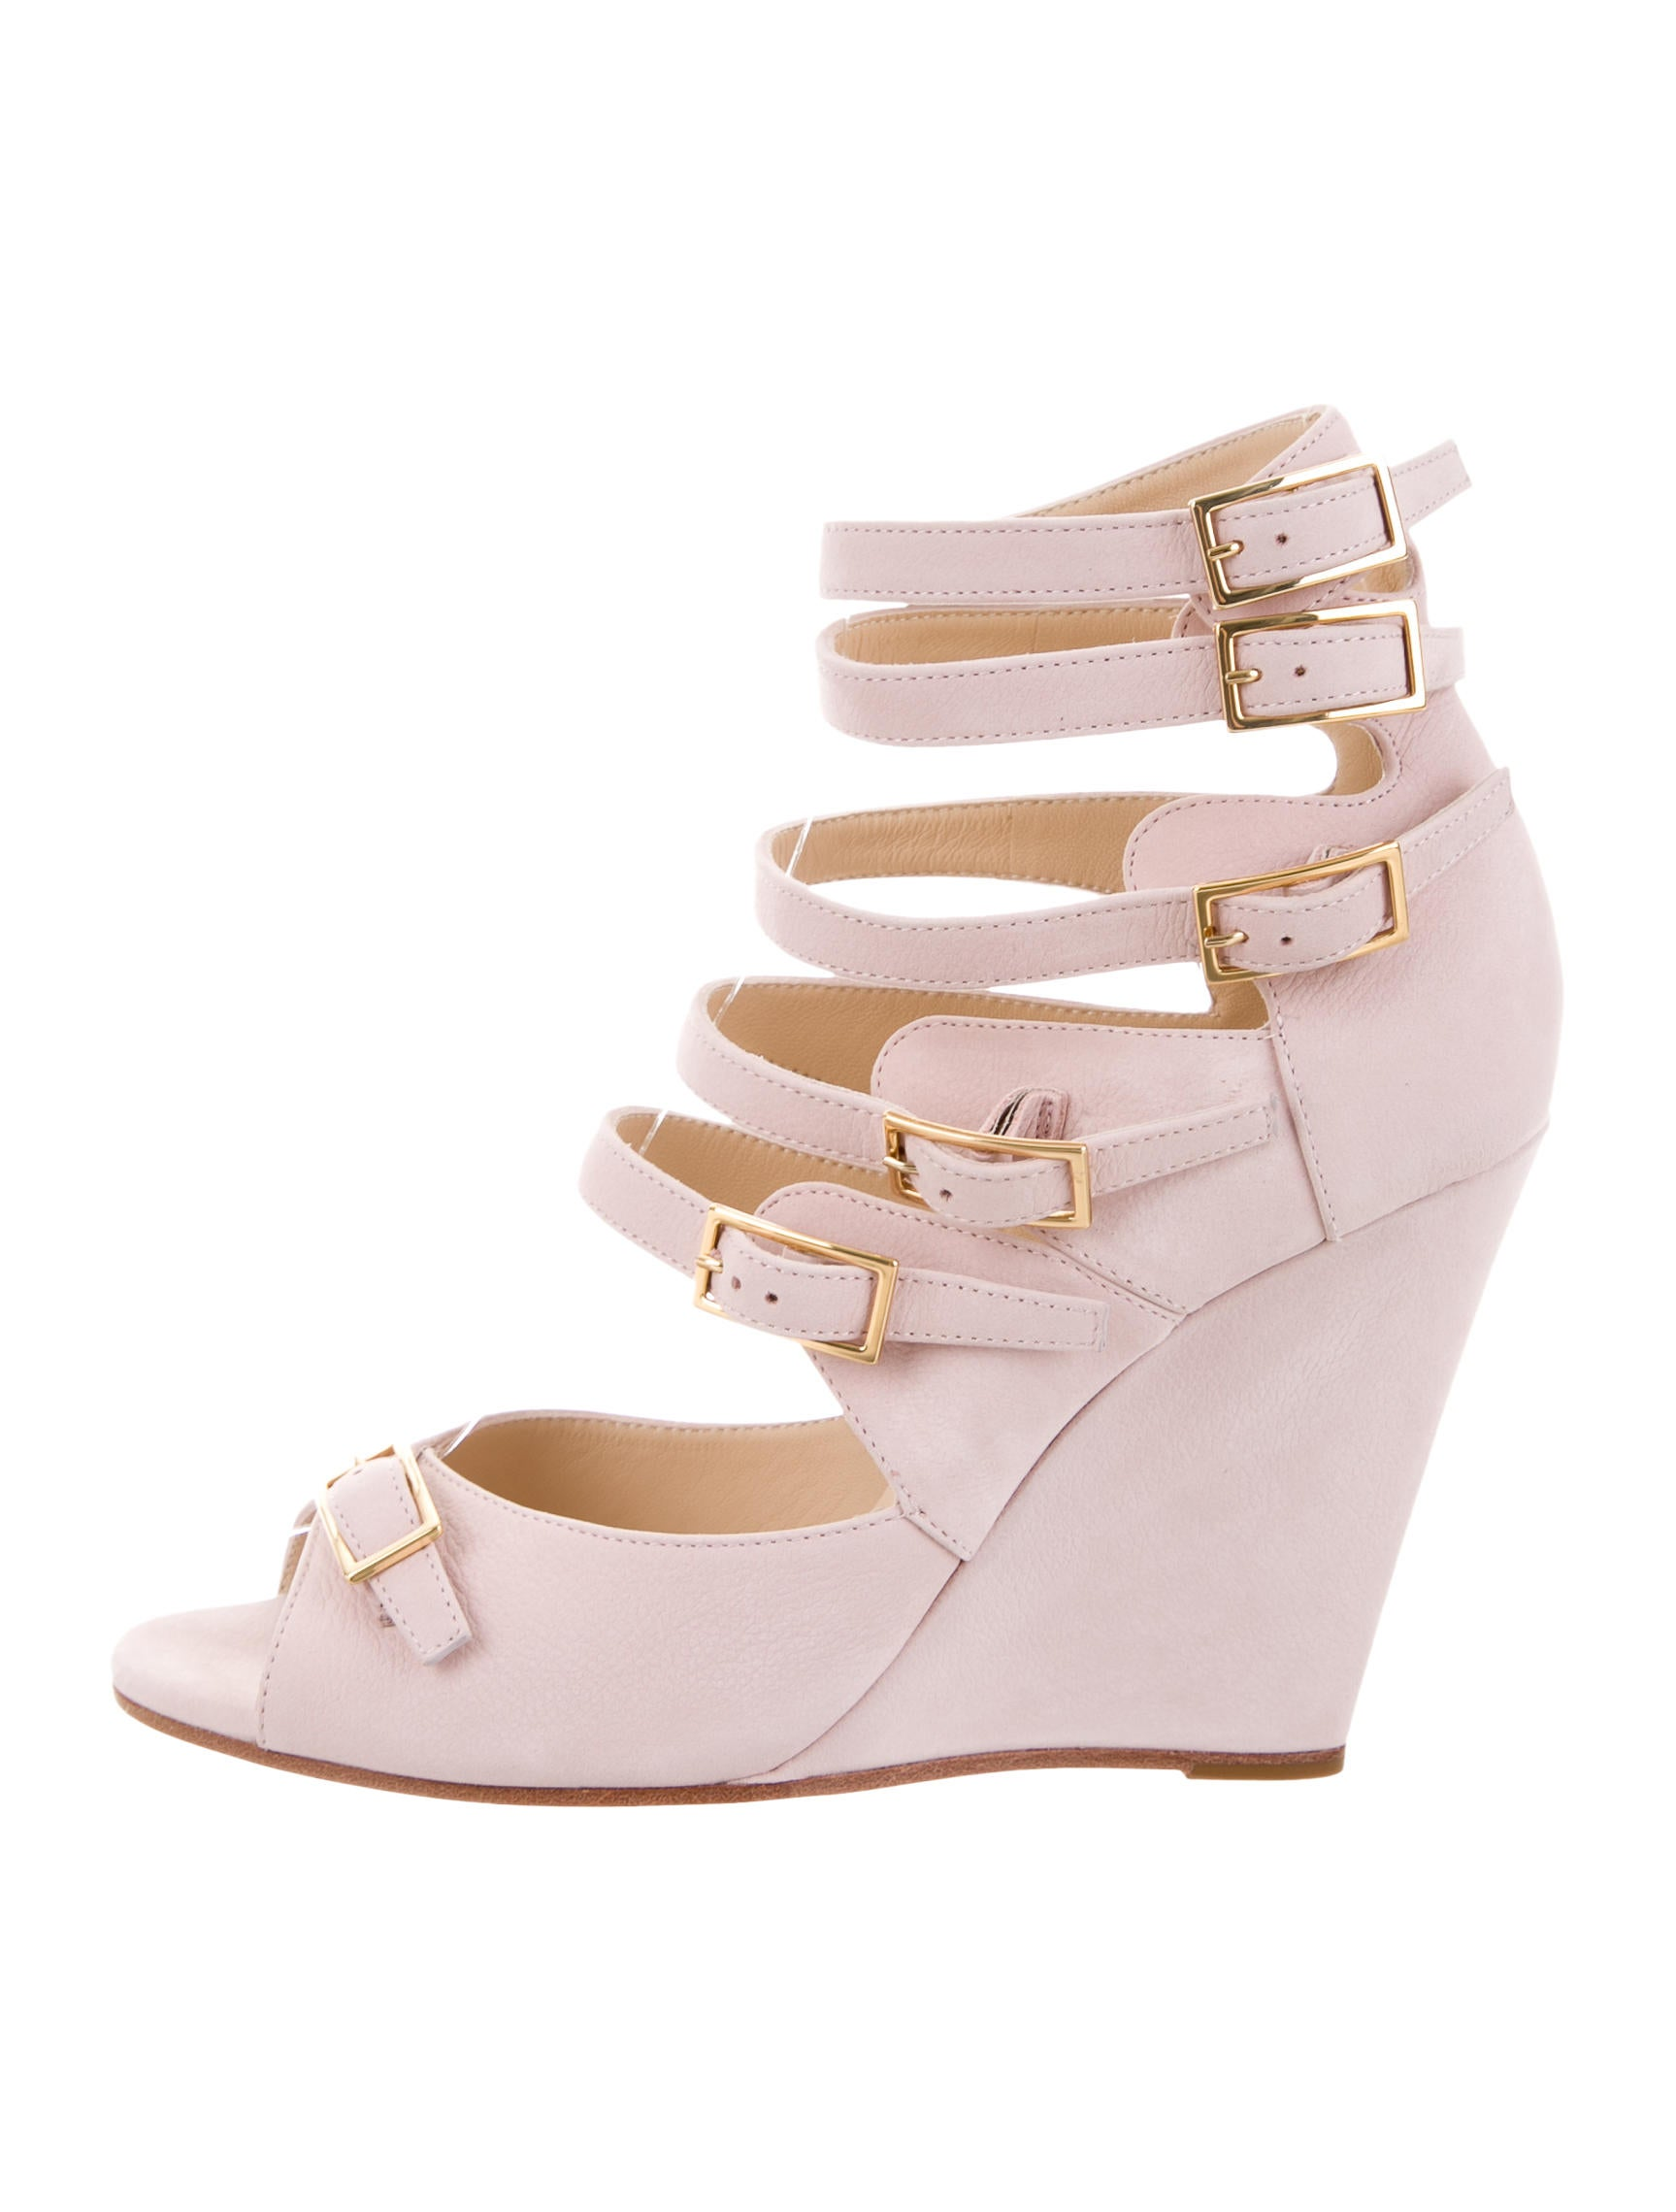 cheap best wholesale Chloé Multistrap Wedge Pumps w/ Tags cheap classic free shipping very cheap low shipping online clearance best place AcQZD8